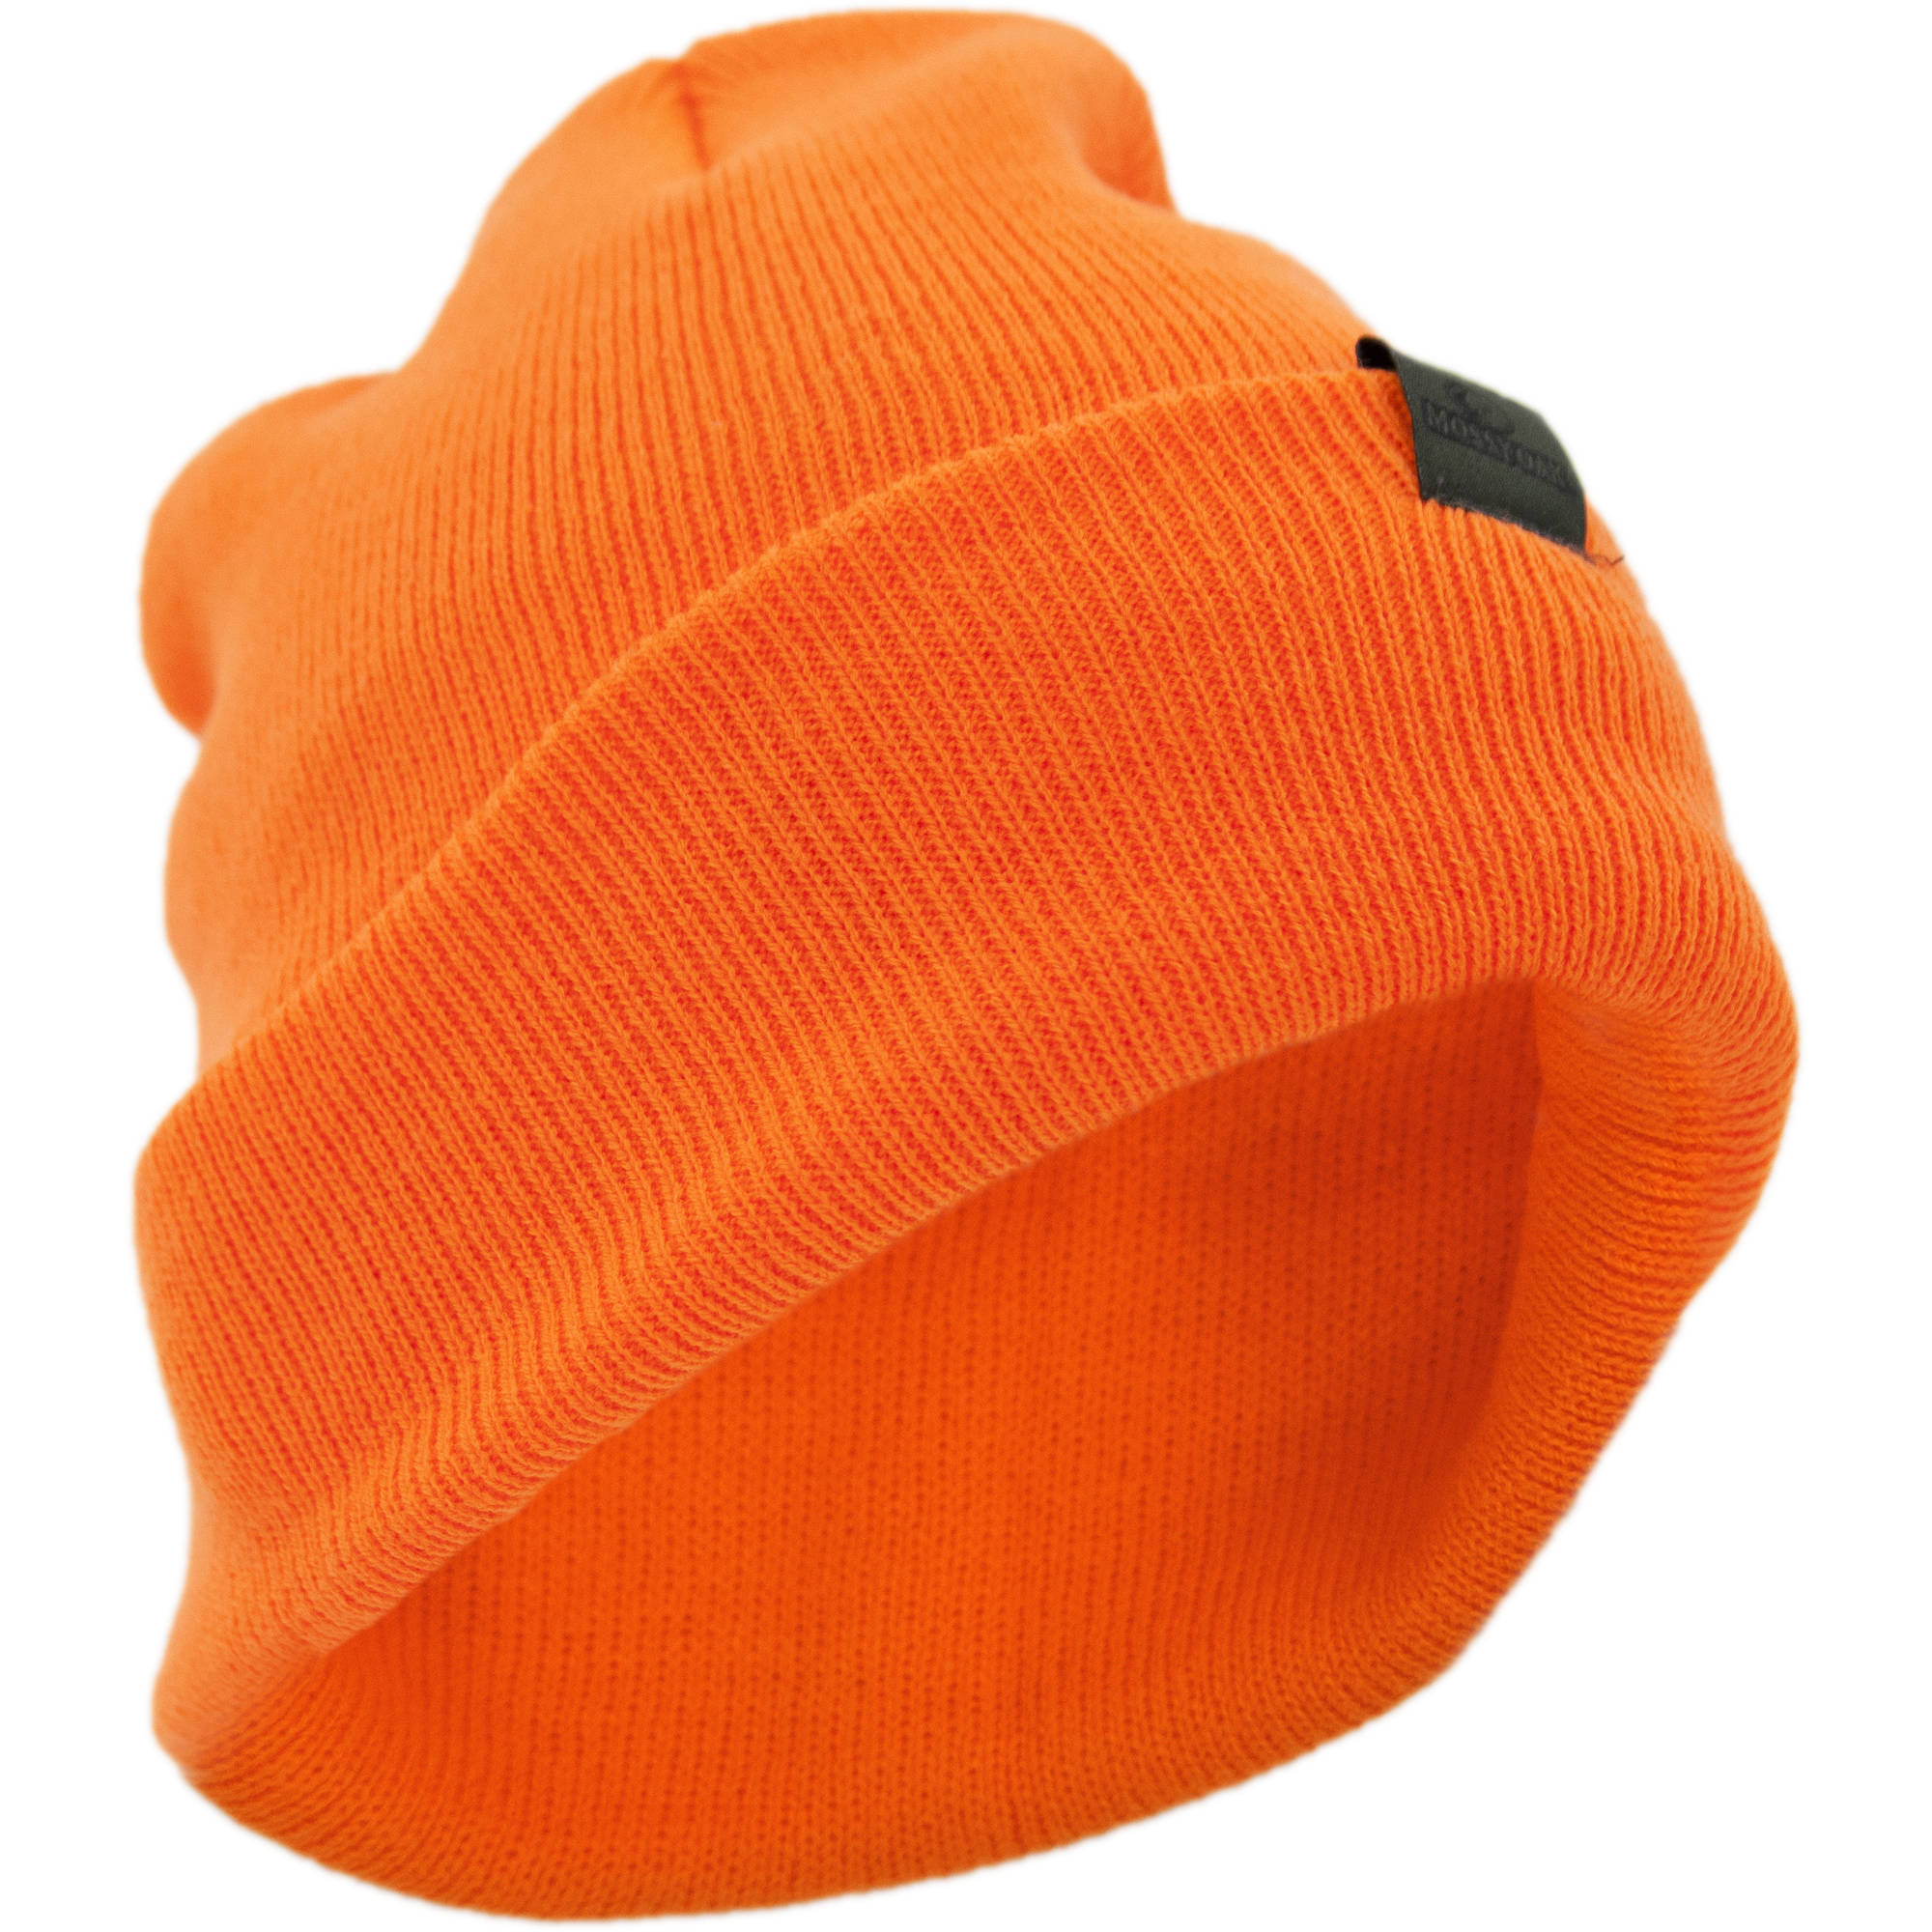 Mossy Oak Blaze Orange Insulated Hat by LUCKY ZONE DESIGN